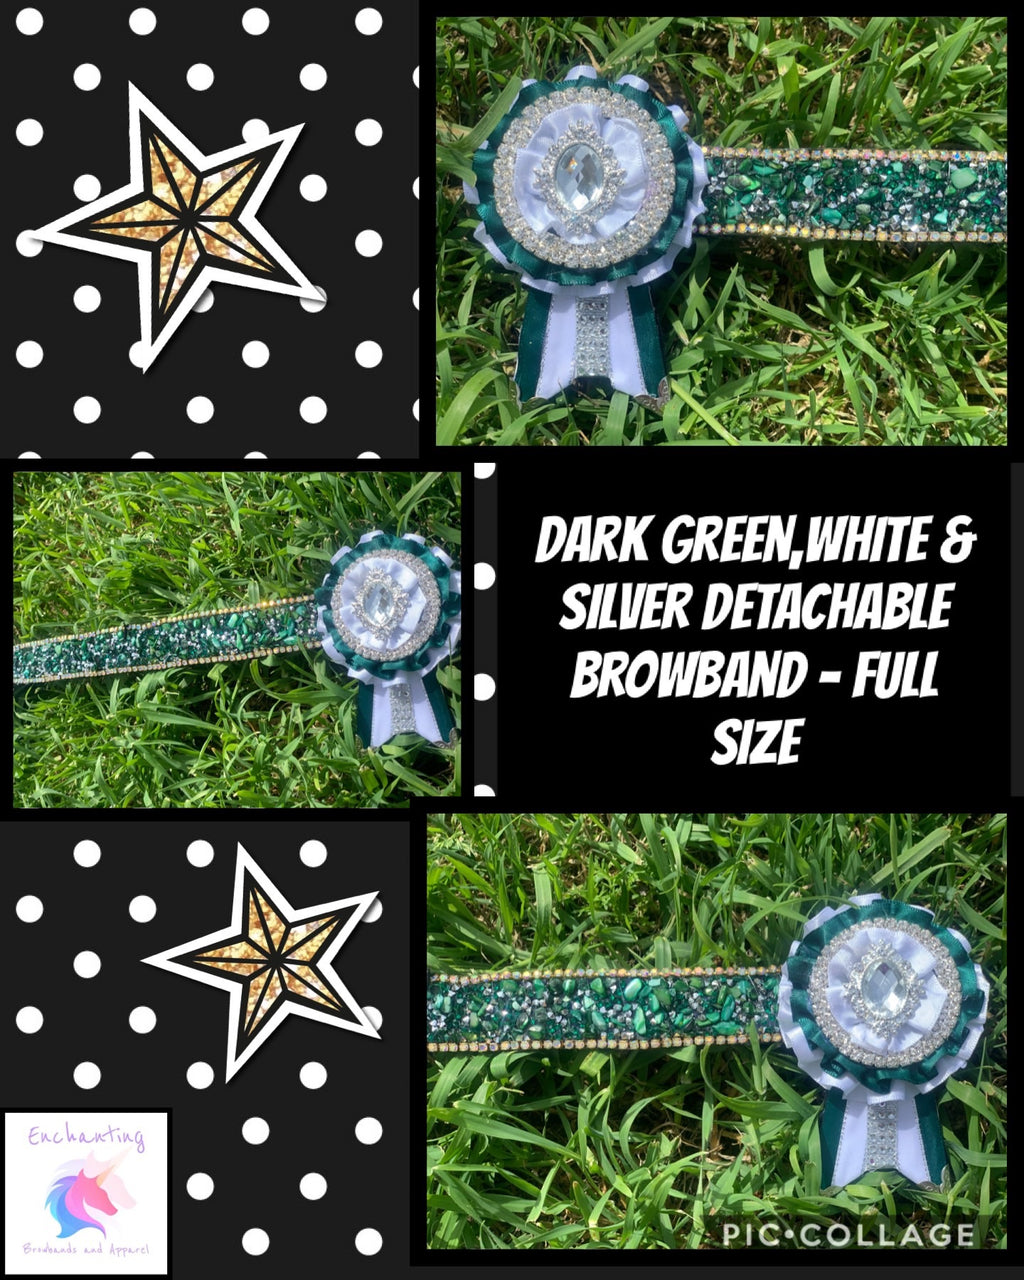 Dark green, white & silver browband